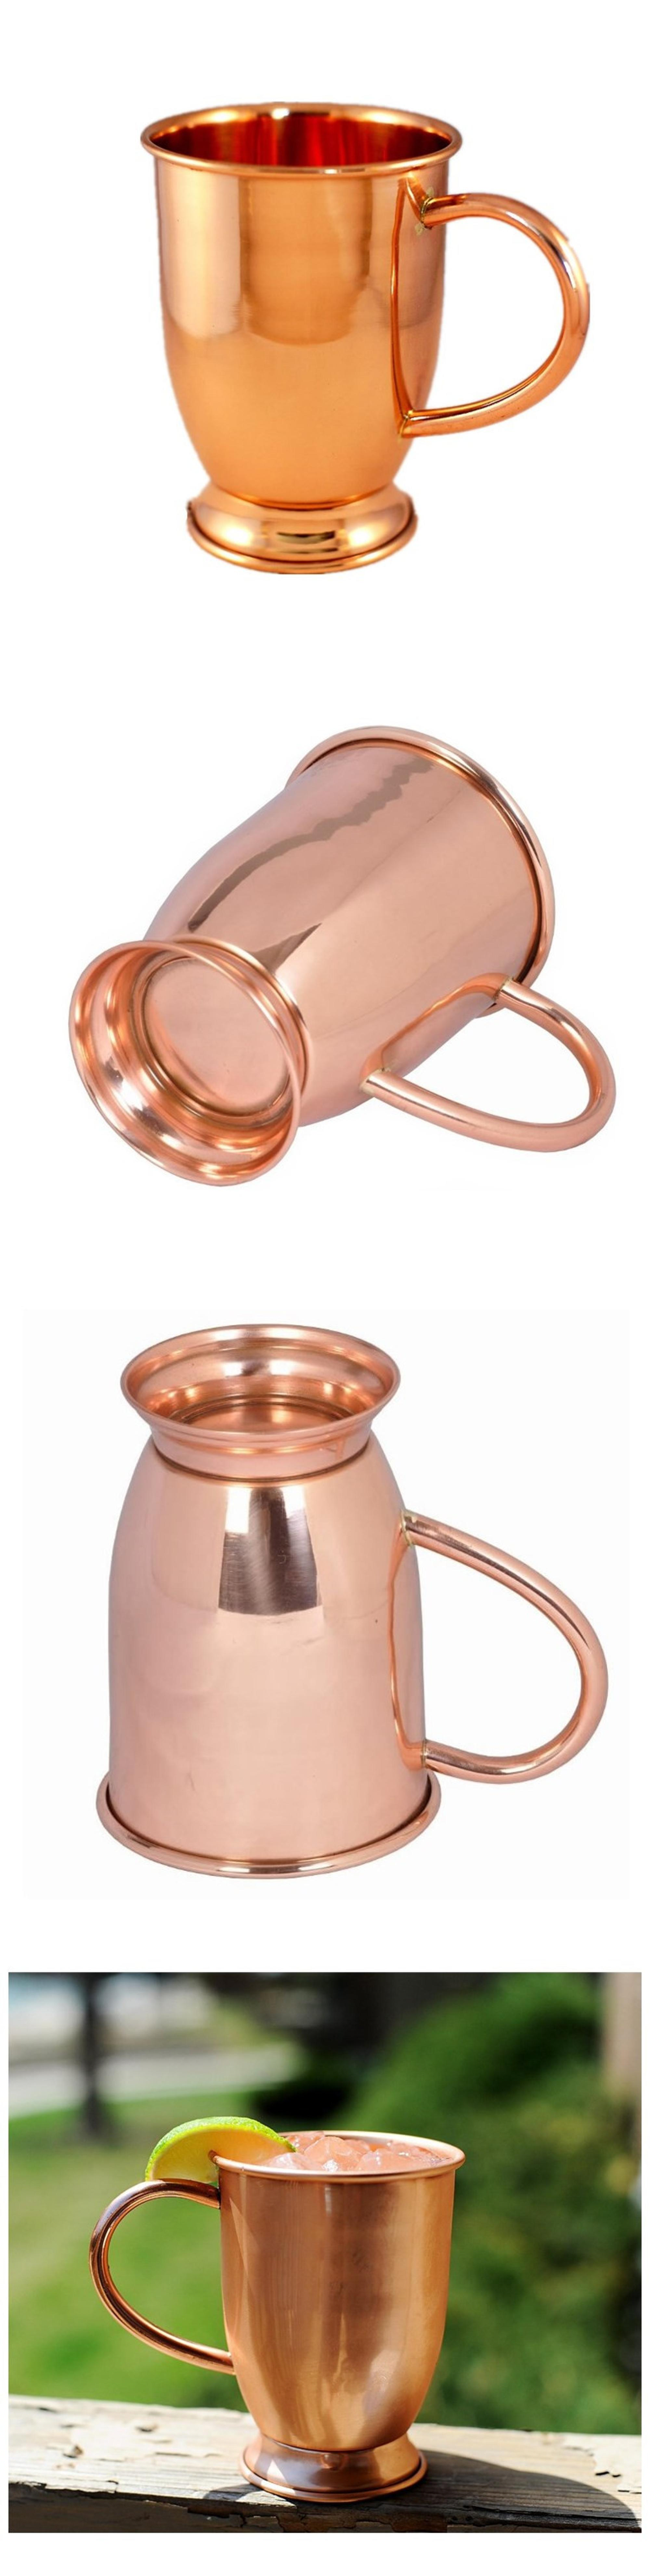 Stainless Steel Martini Julep Cup with Rose Gold Plated